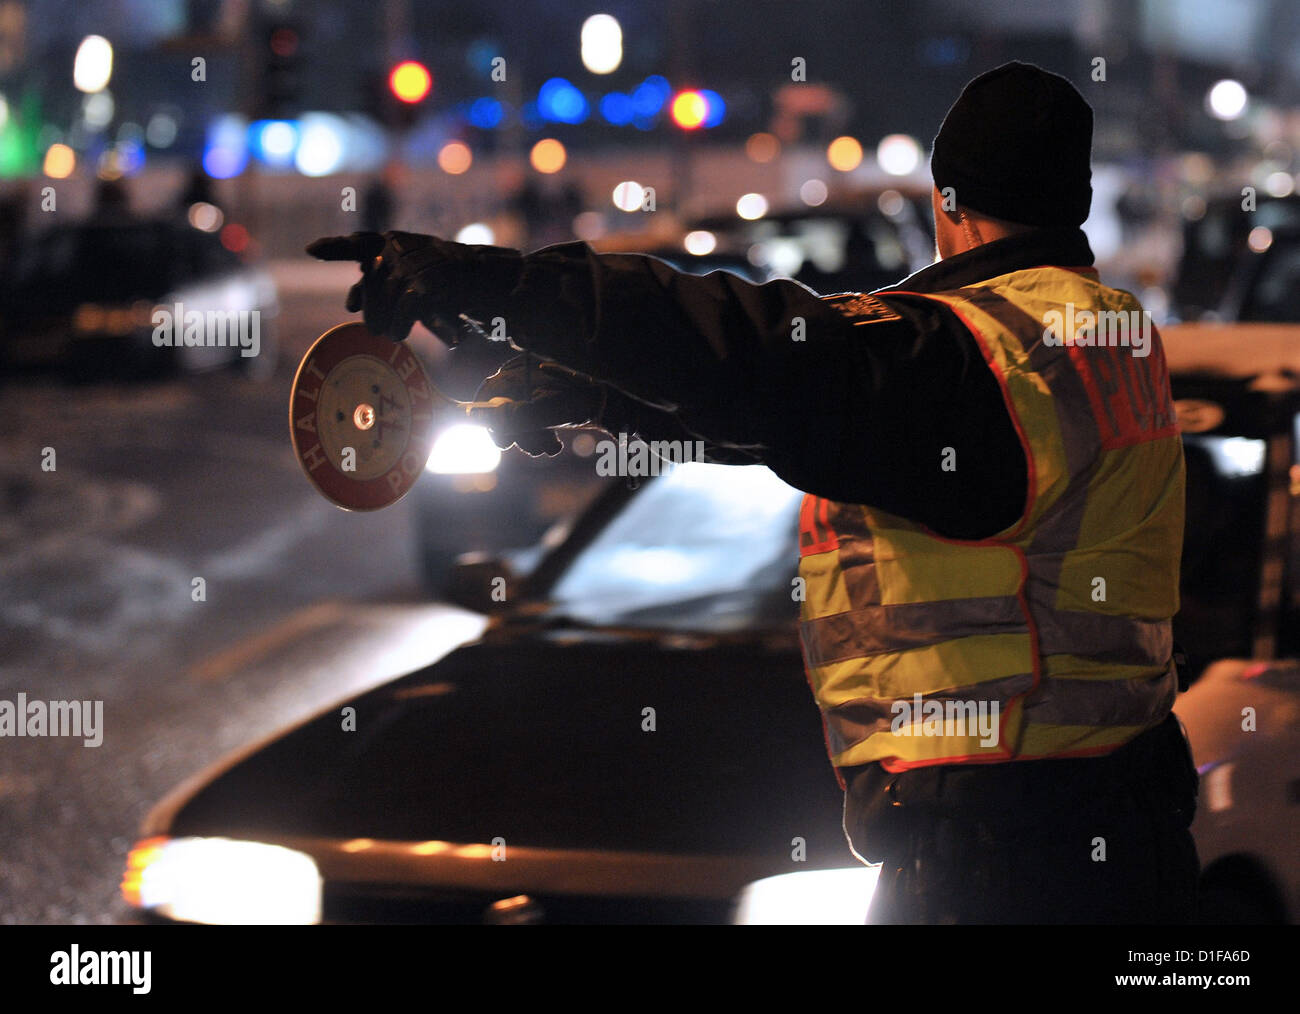 A police officer indicates to a driver to pull over in heavy traffic on the Alexanderplatz square in Berlin, Germany, - Stock Image